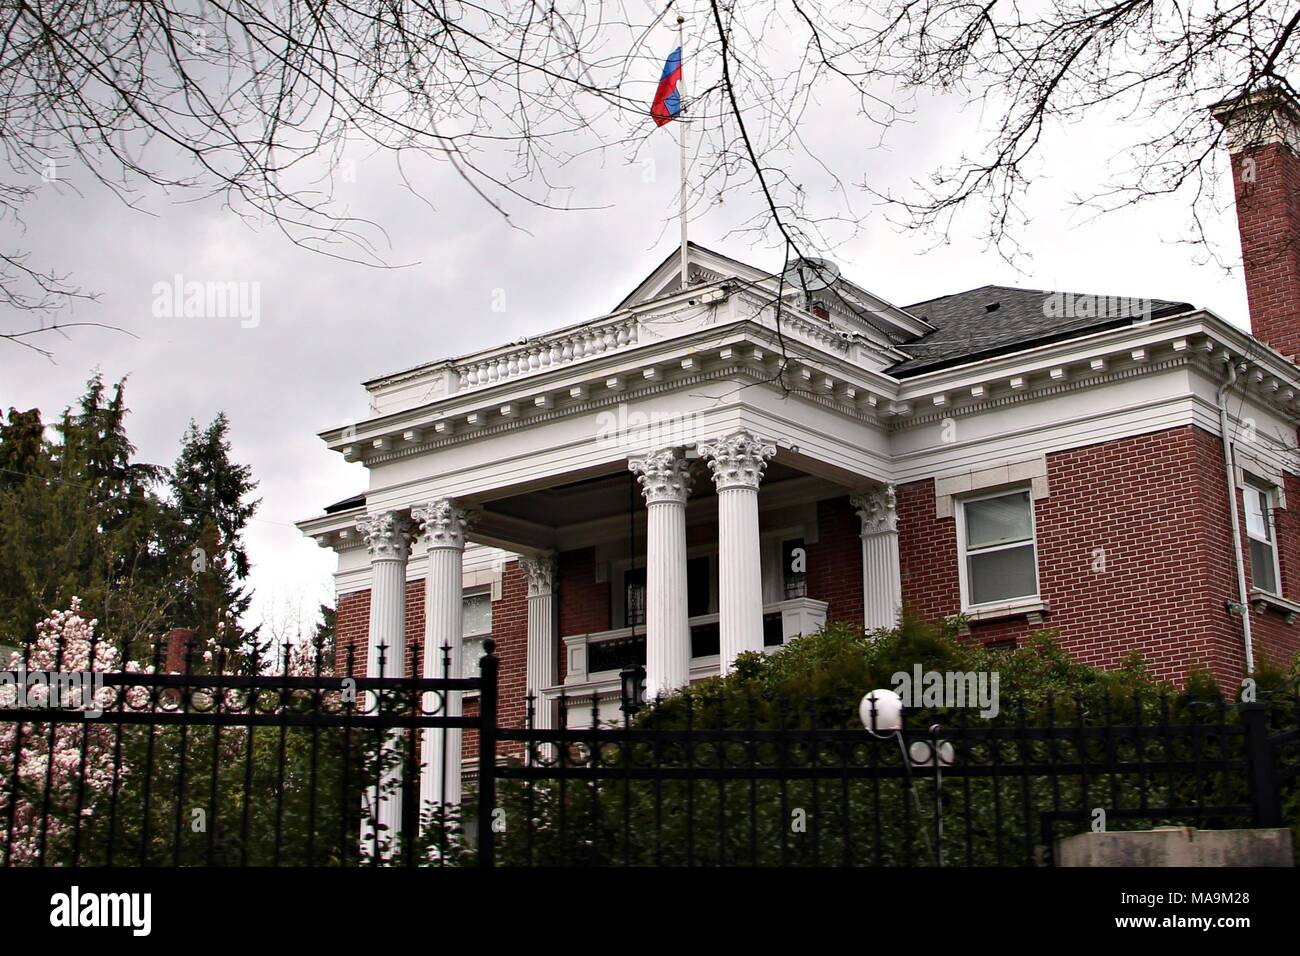 Seattle, USA. 30th Mar, 2018. The Russian flag flies over the Russian consular residence in Seattle. Earlier this week, the Trump administration ordered the closure of the Russian Consulate-General in Seattle by April 2. According to Russian officials, the residence of the Consul General will remain occupied until April 24 when, it too, must close. Credit: Toby Scott/Alamy Live News. - Stock Image